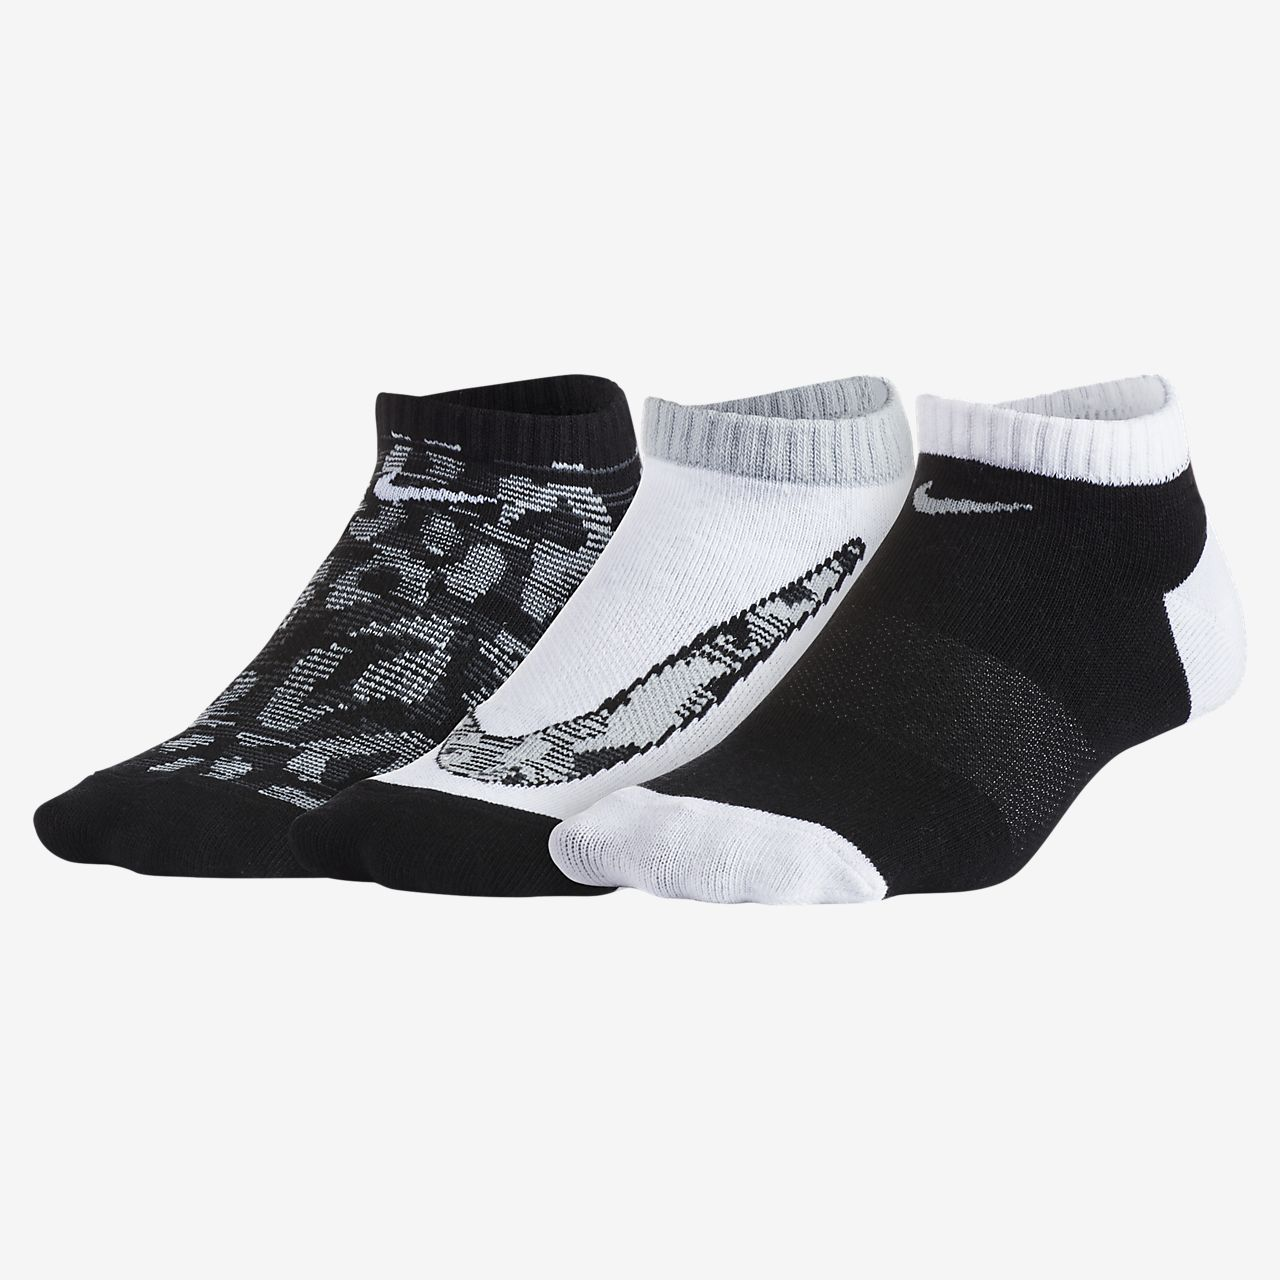 Nike Tigress No-Show Younger Kids' Socks (3 Pair)